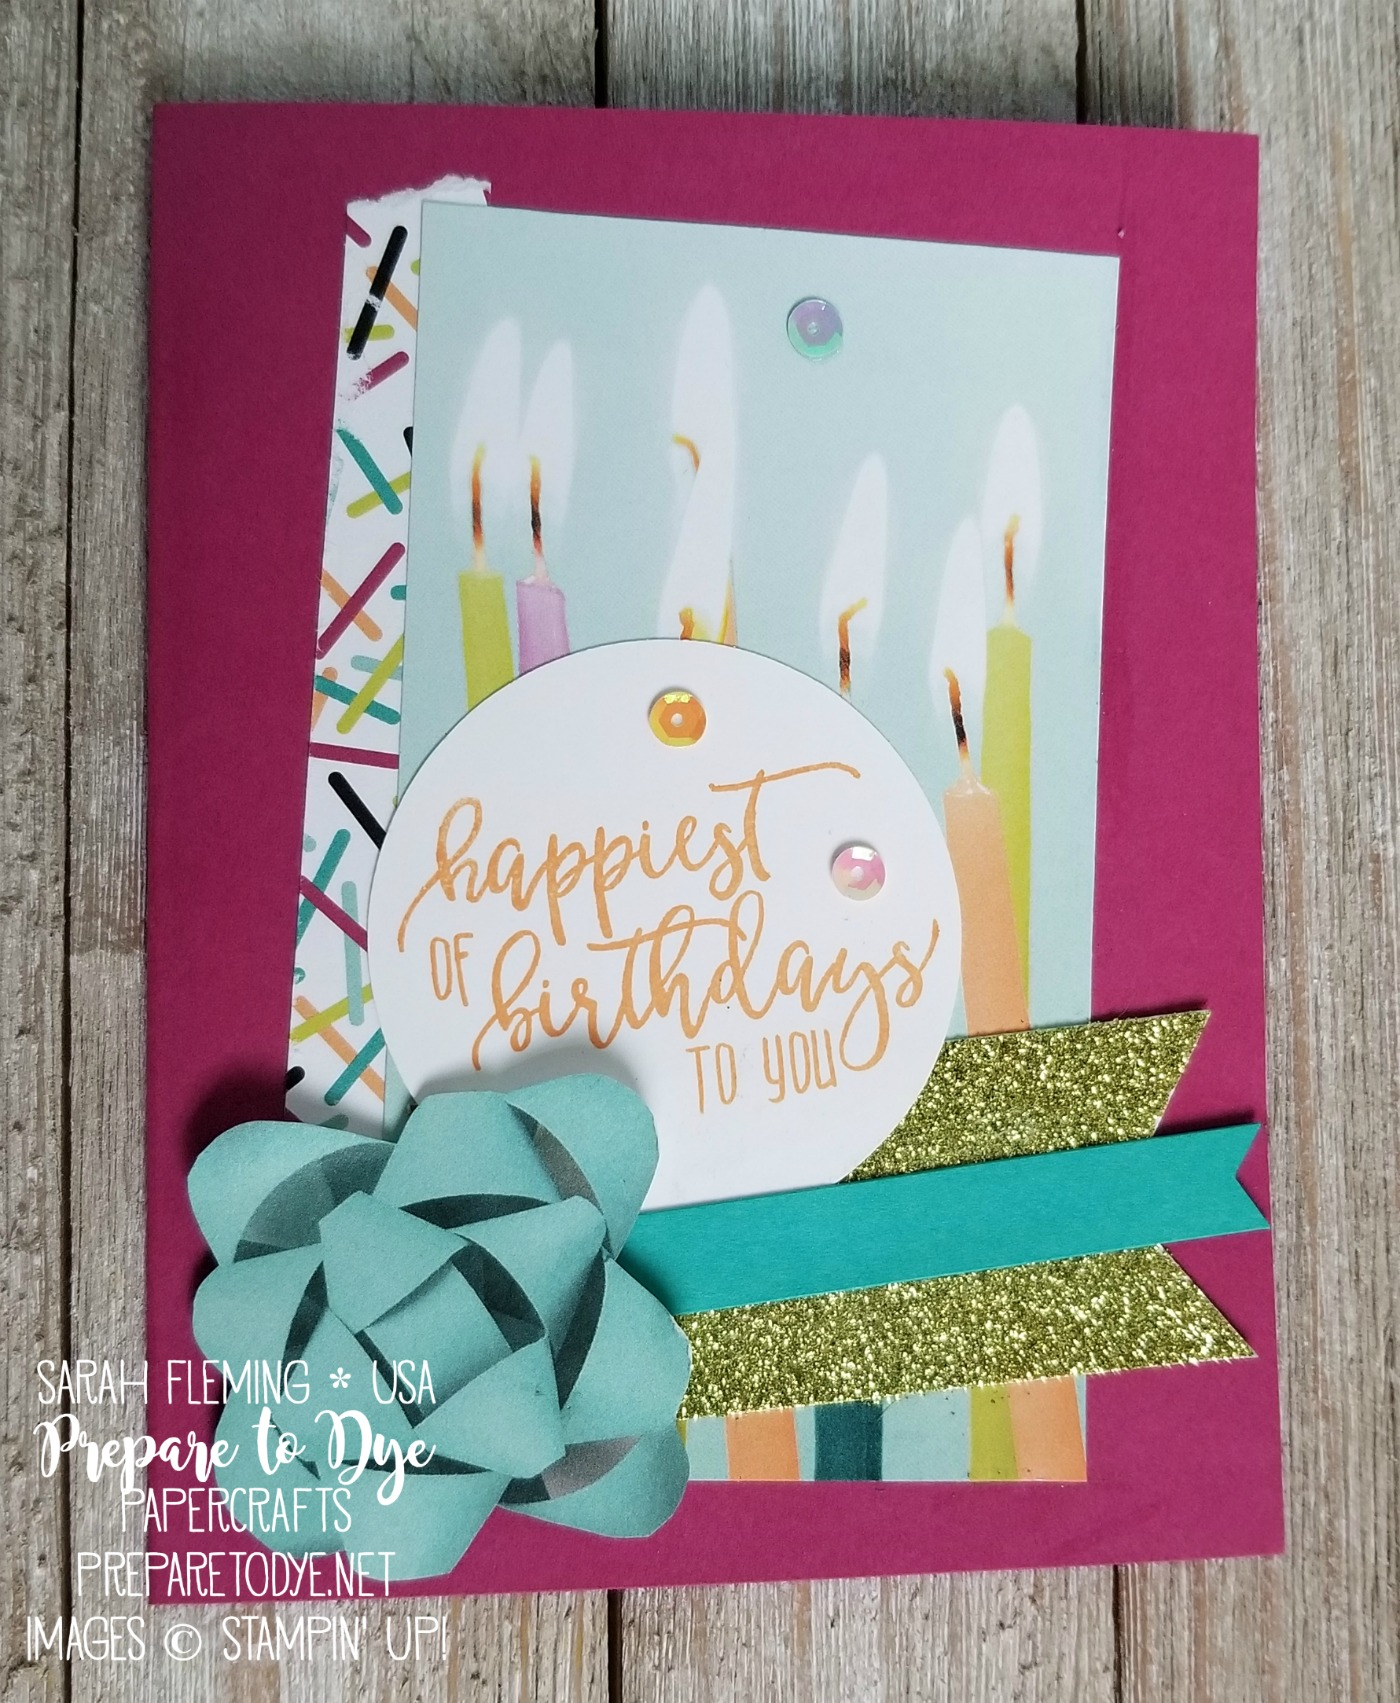 Stampin' Up! Picture Perfect Birthday with Picture Perfect Party paper, Myths & Magic Glimmer Paper - handmade birthday card - Sarah Fleming - Prepare to Dye Papercrafts